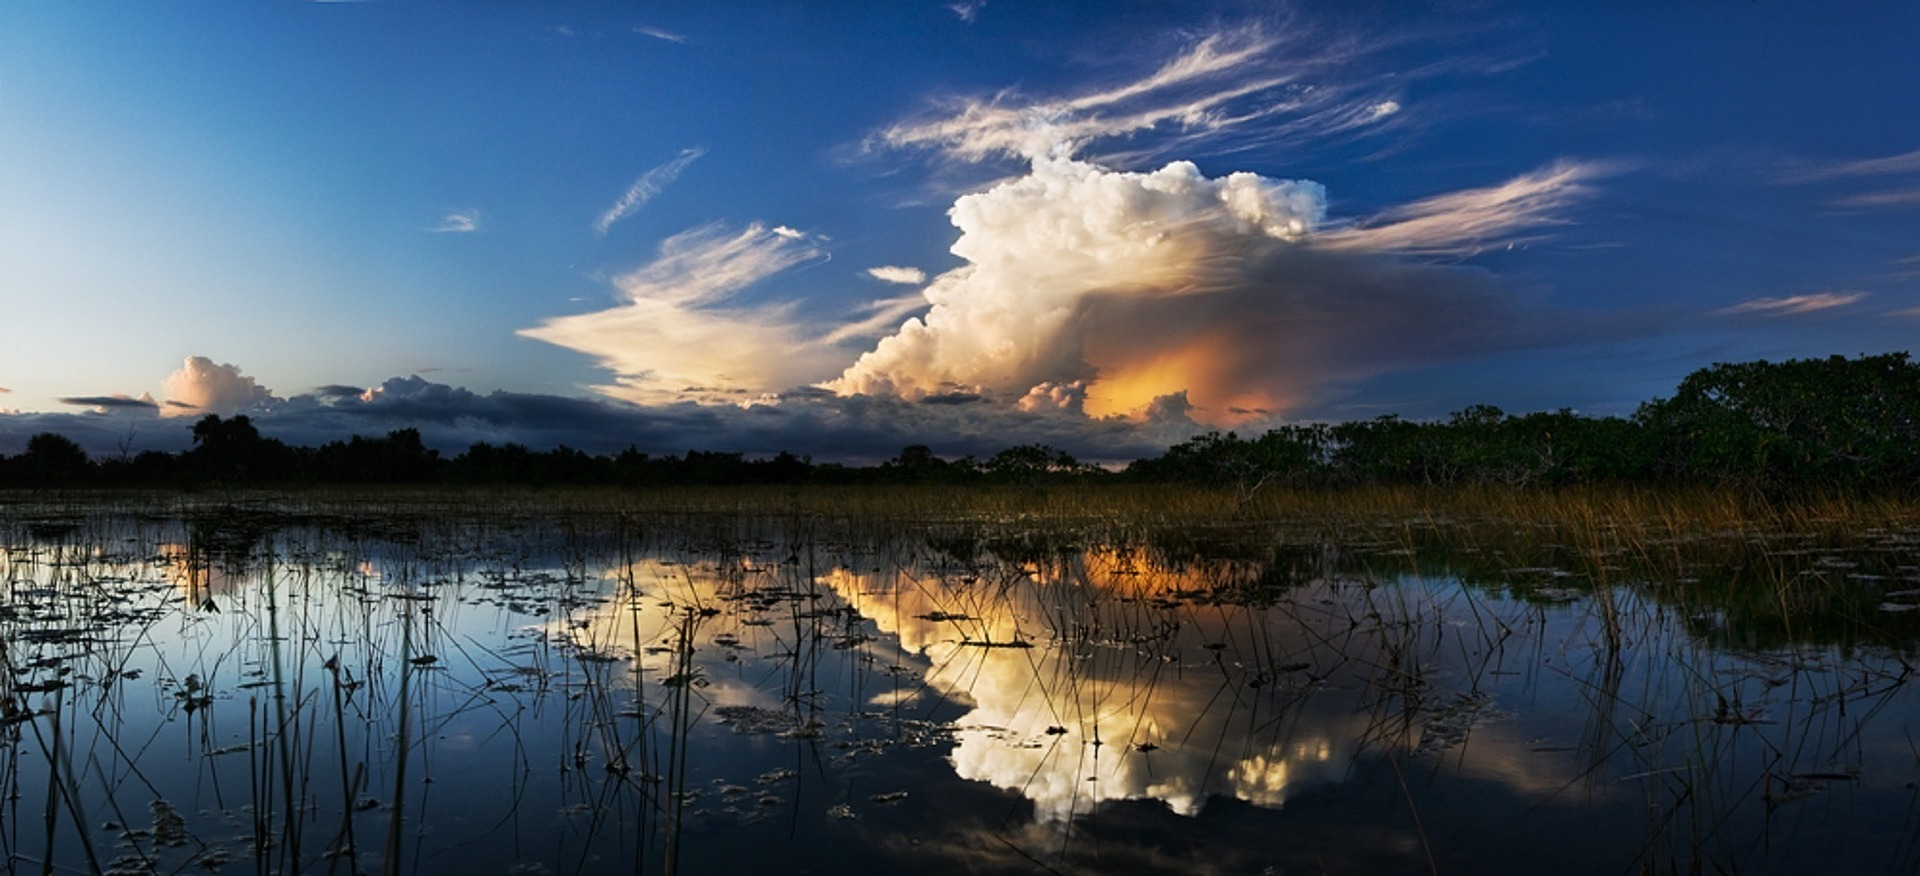 Florida Ecosystems Threatened by Climate Warming